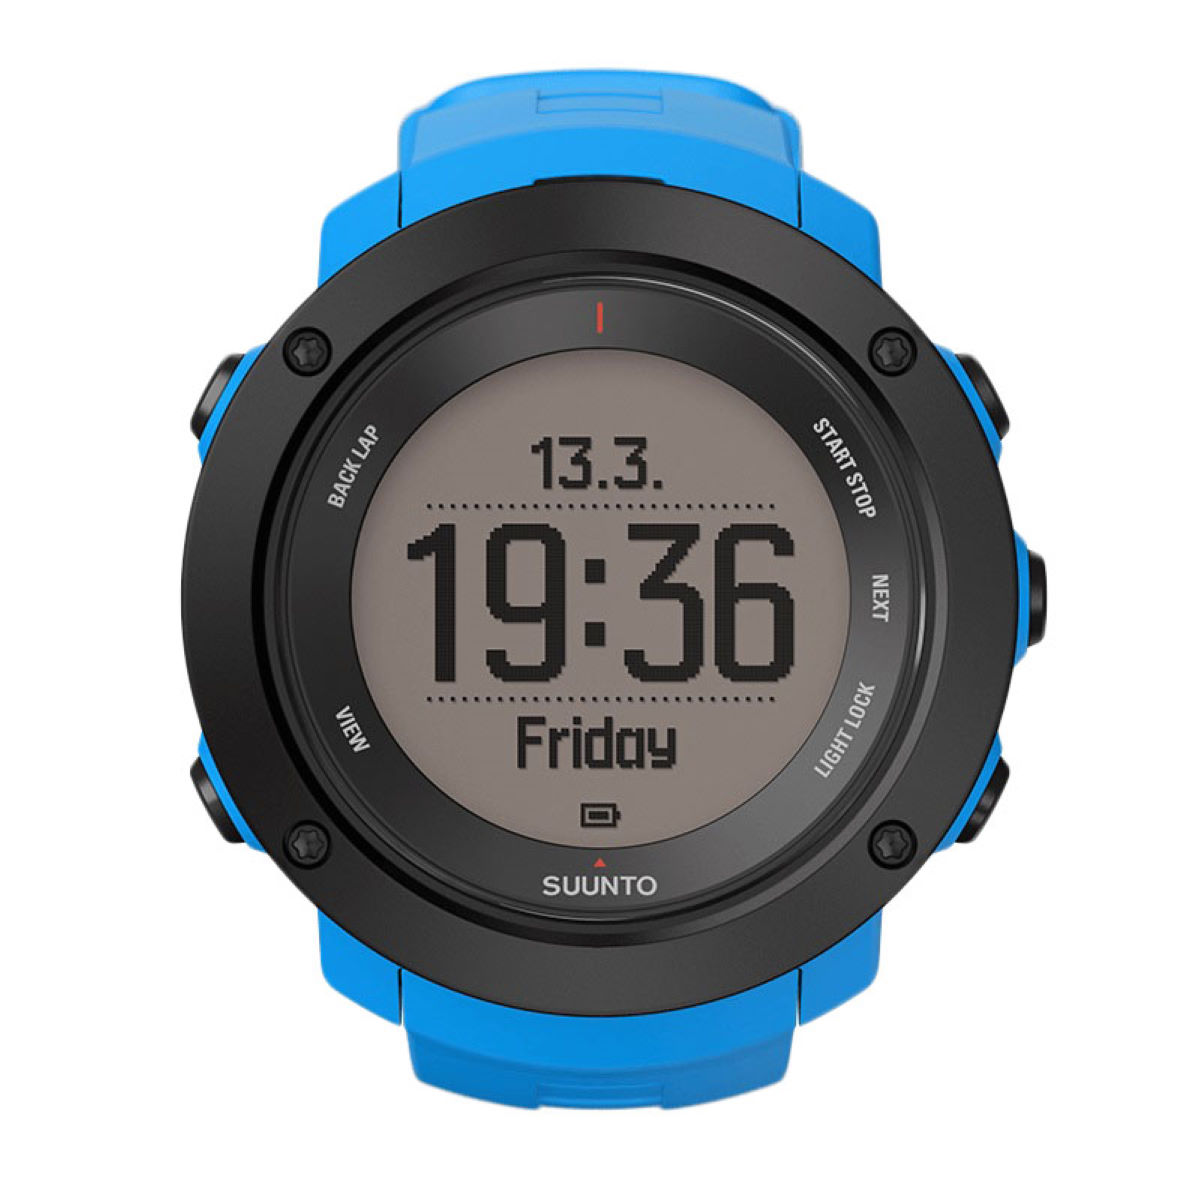 Montre Suunto Ambit 3 Vertical - Bleu Compteurs GPS de running